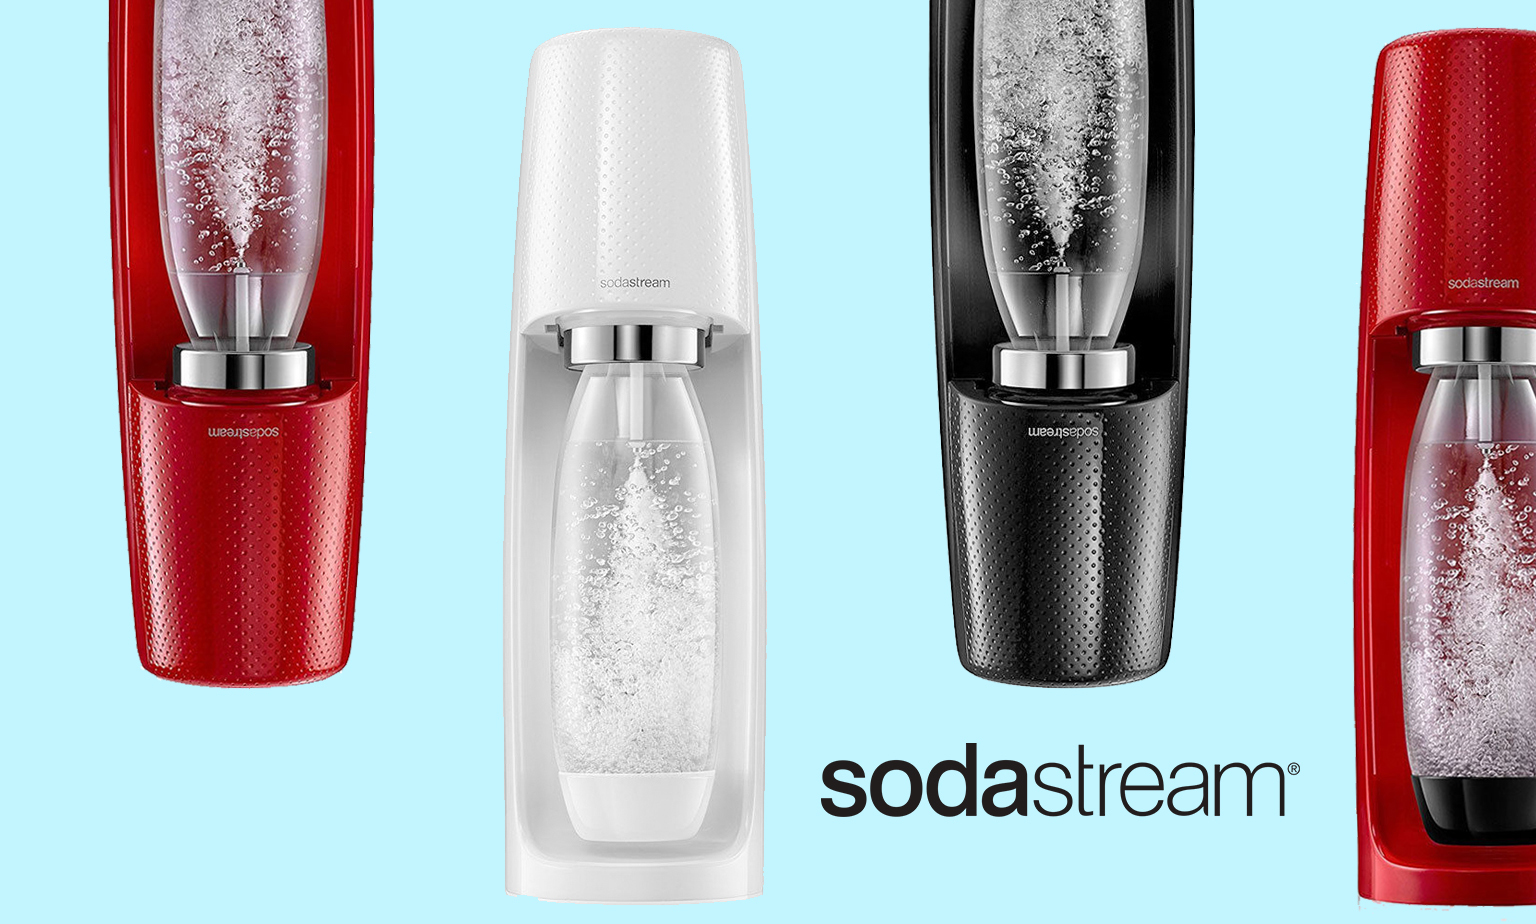 Sparkle up Your Day With SodaStream